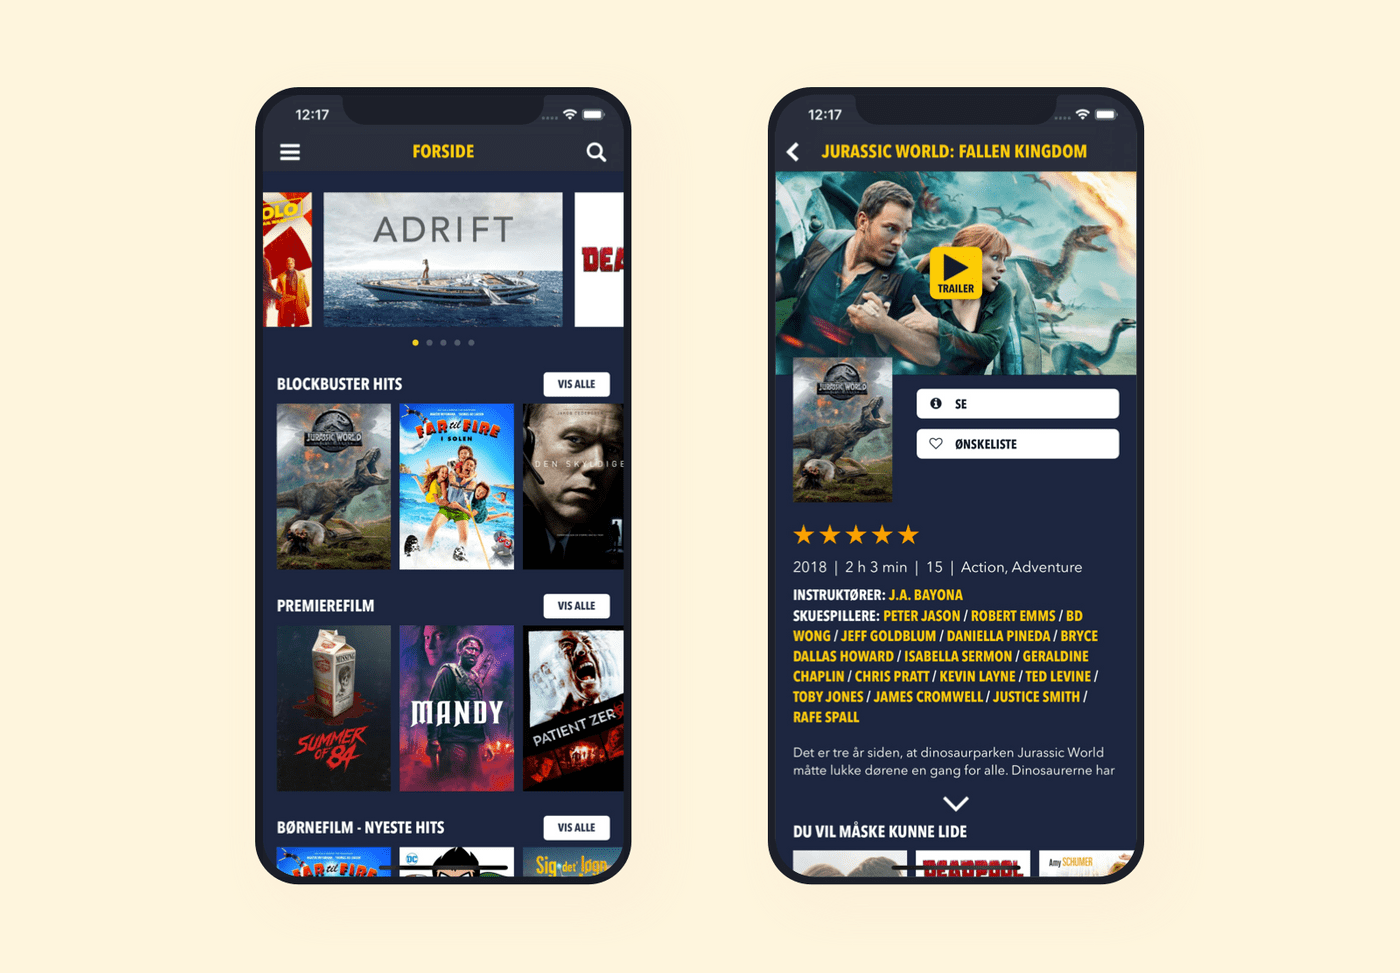 Blockbuster video streaming platform